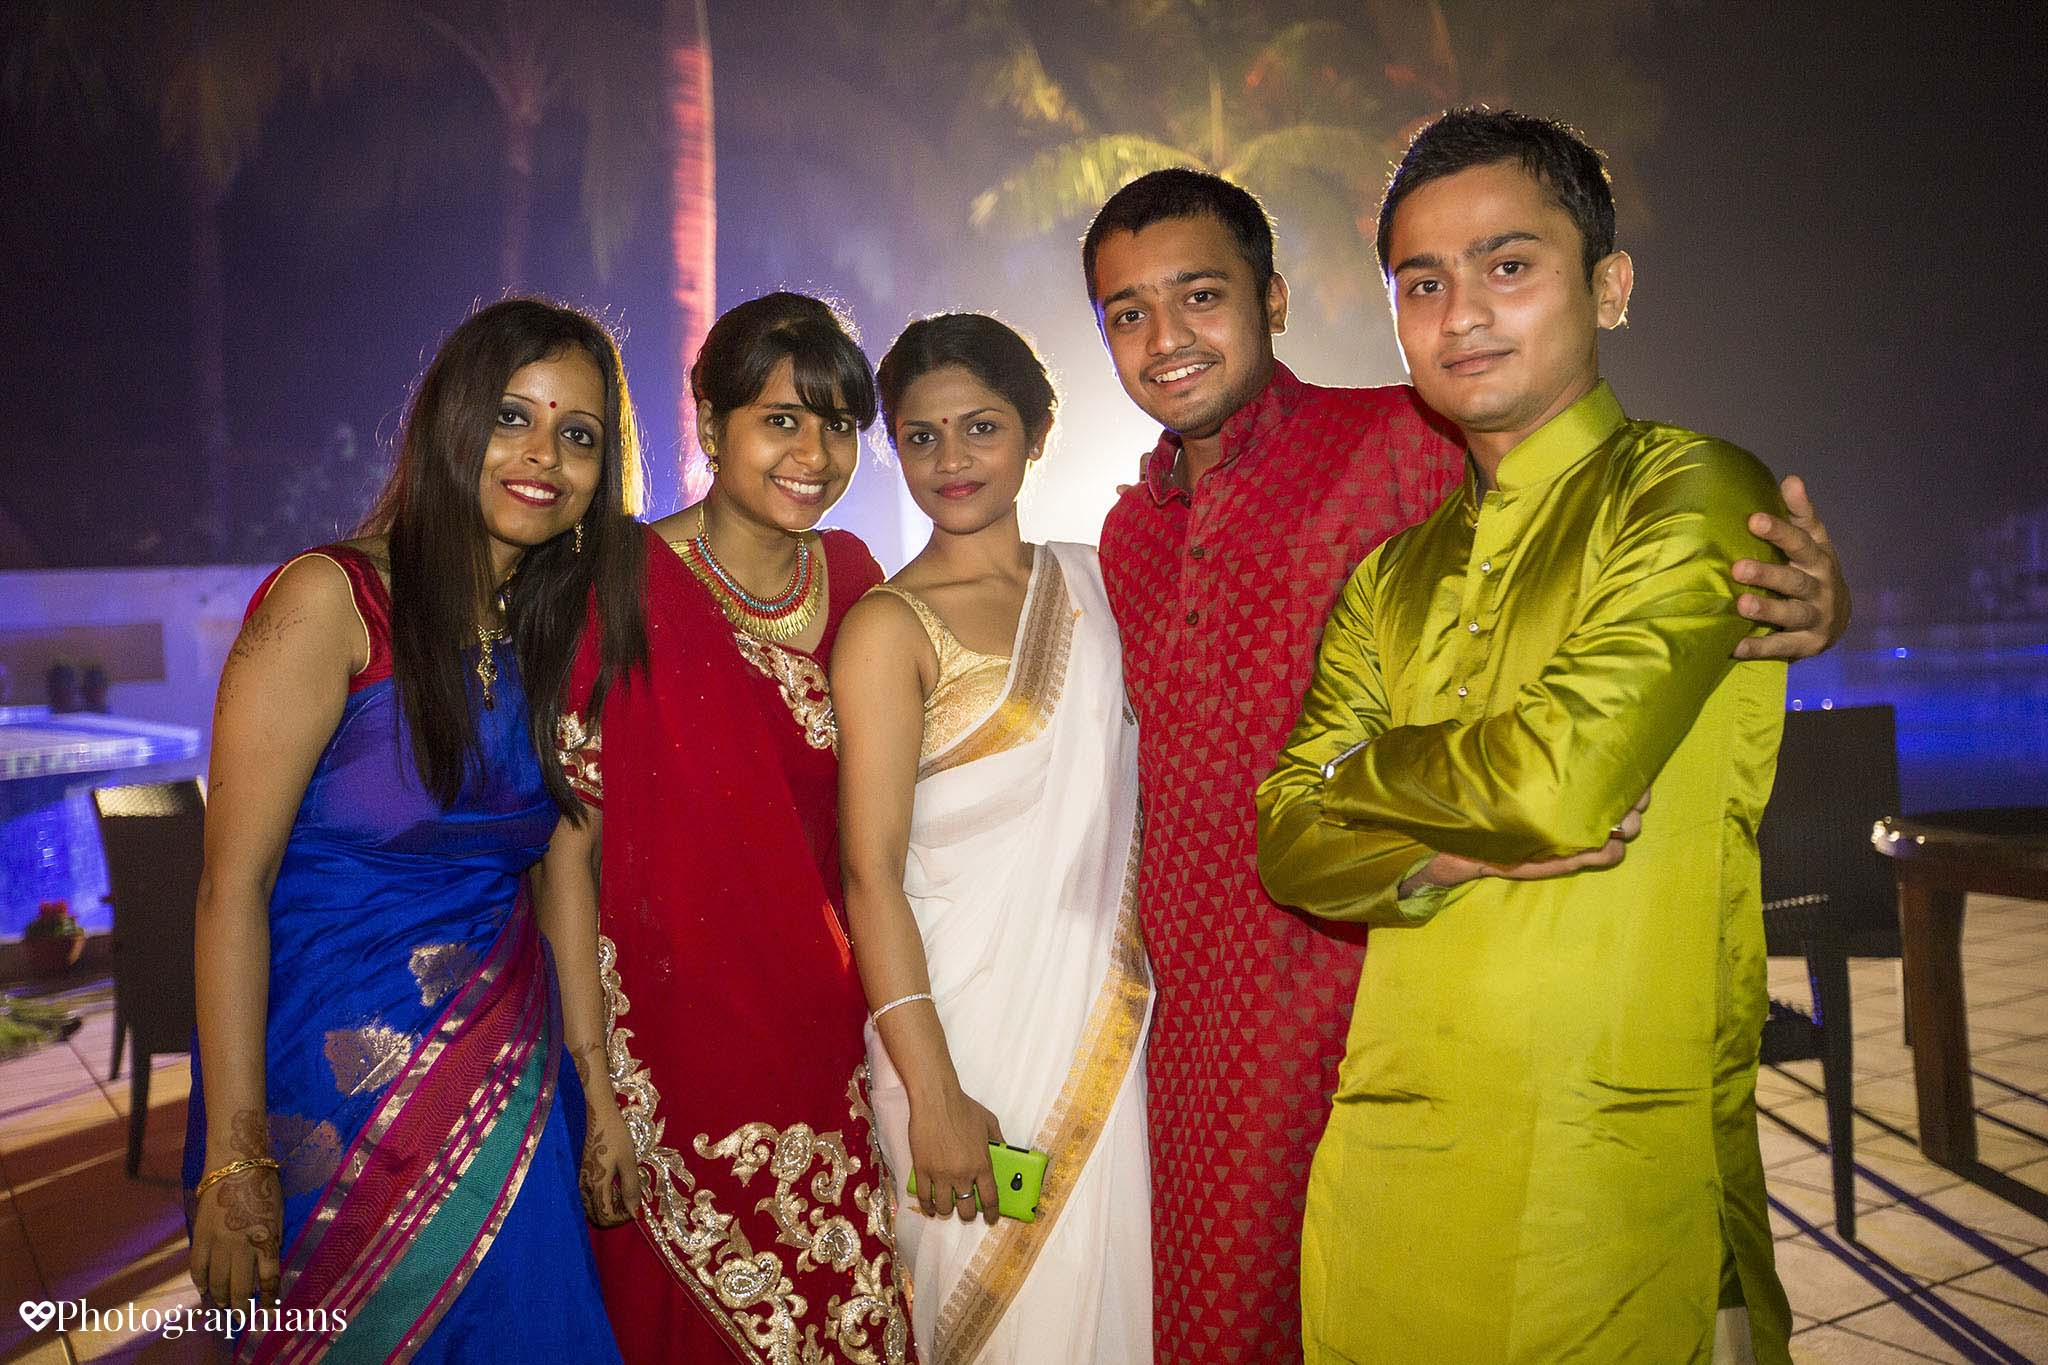 Photographians_Indian_Destination_Wedding_219